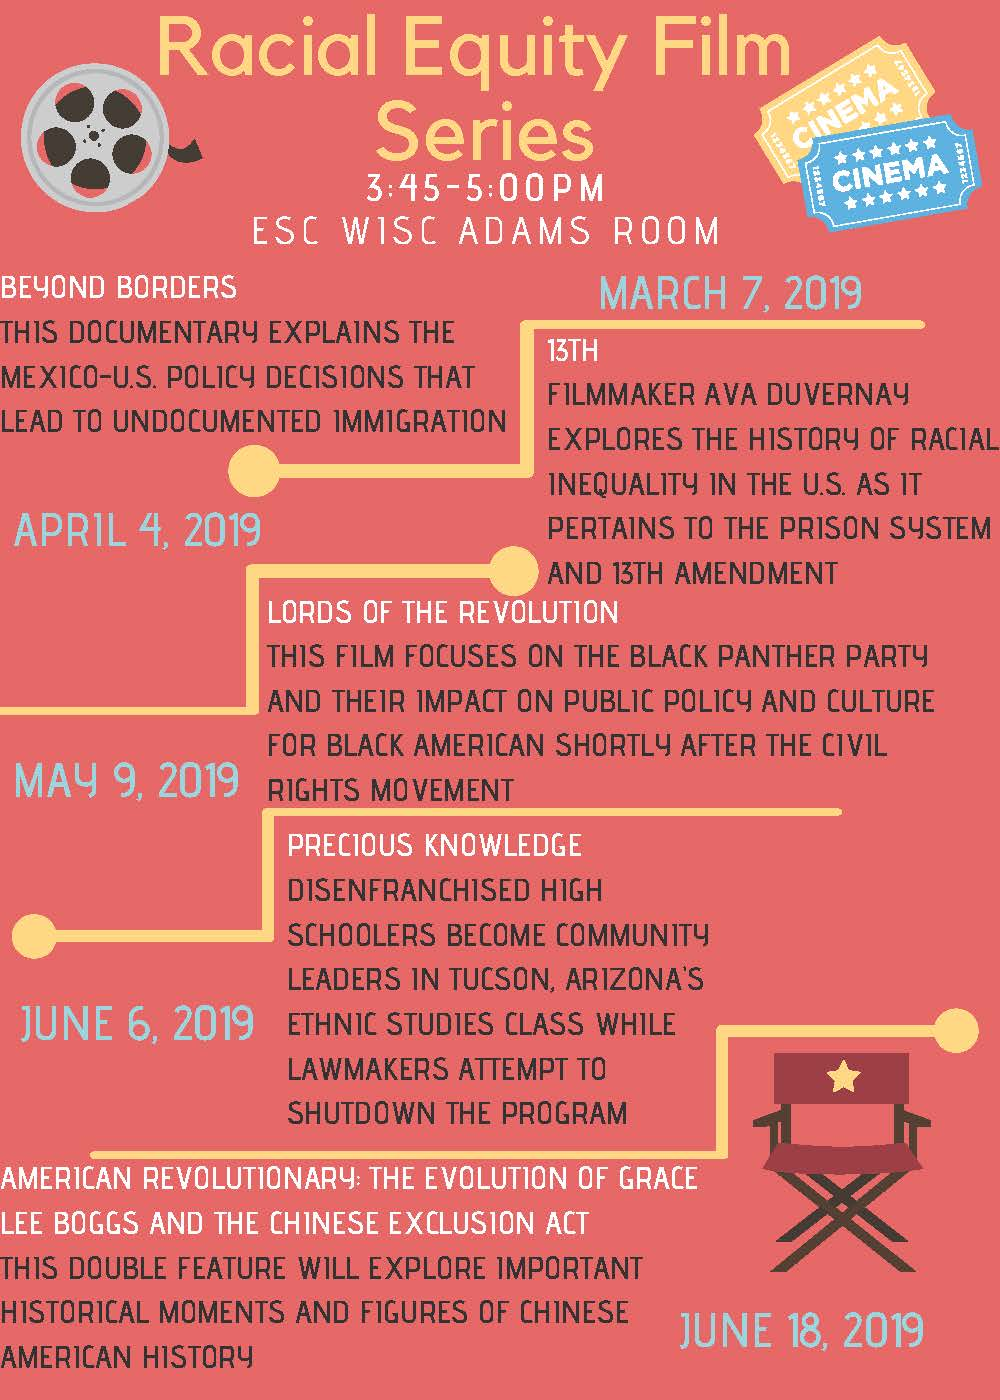 a photo of the poster for the racial equity film series